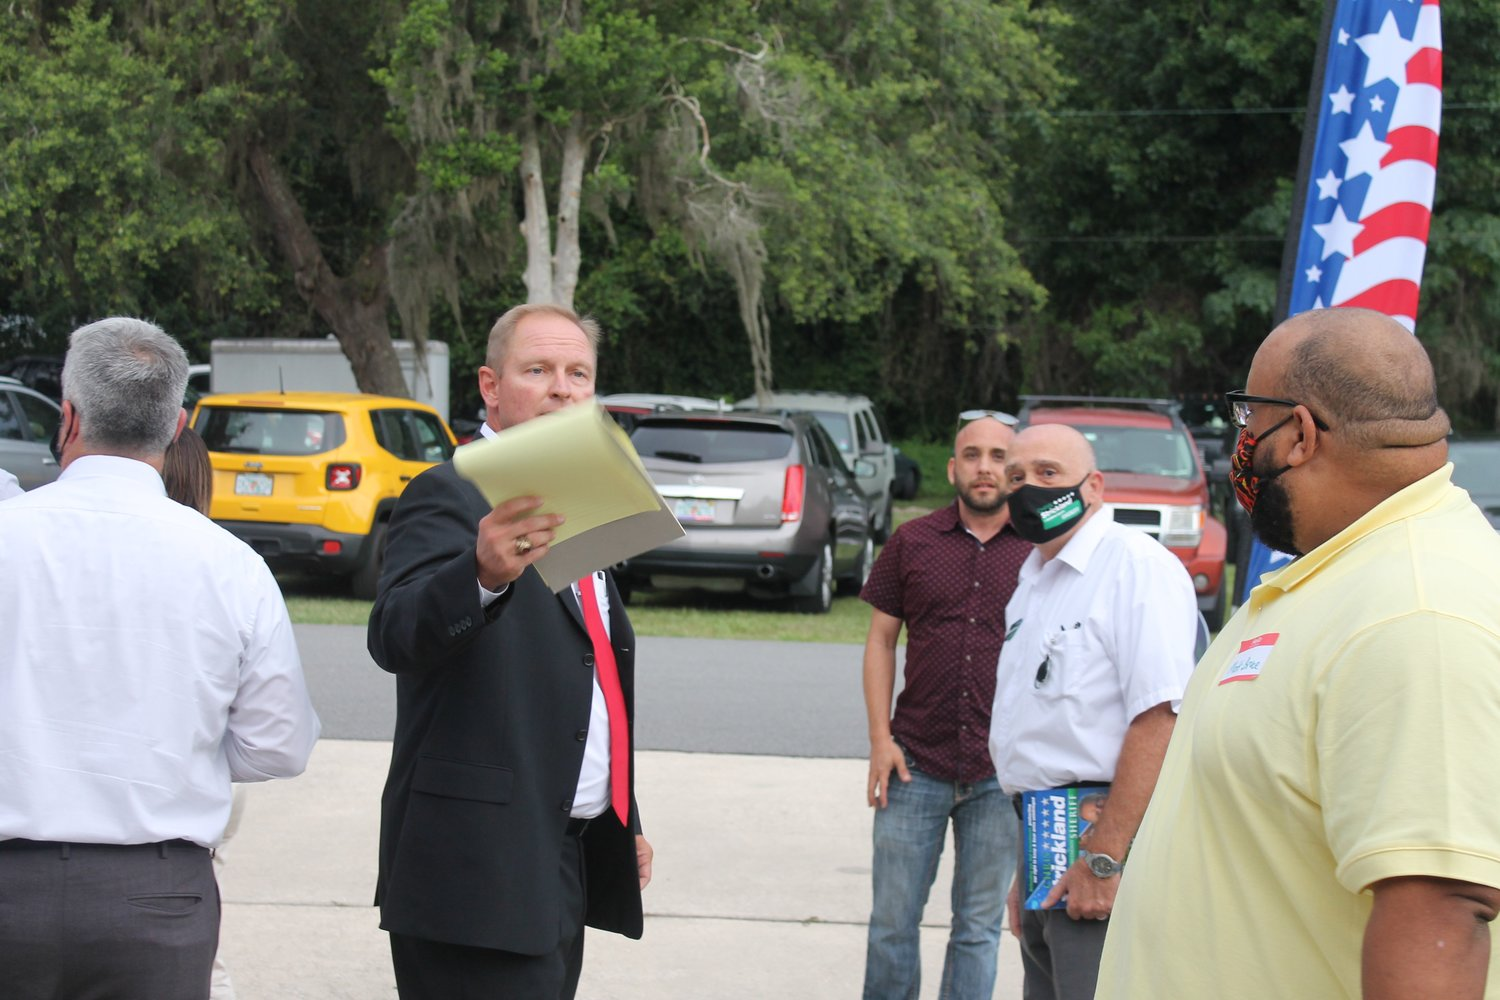 St. Johns County sheriff candidate Chris Strickland leaves the debate with Rob Hardwick early after an argument broke out between Sheriff David Shoar and Strickland supporters July 16 at the ShrIne Club in St. Augustine.